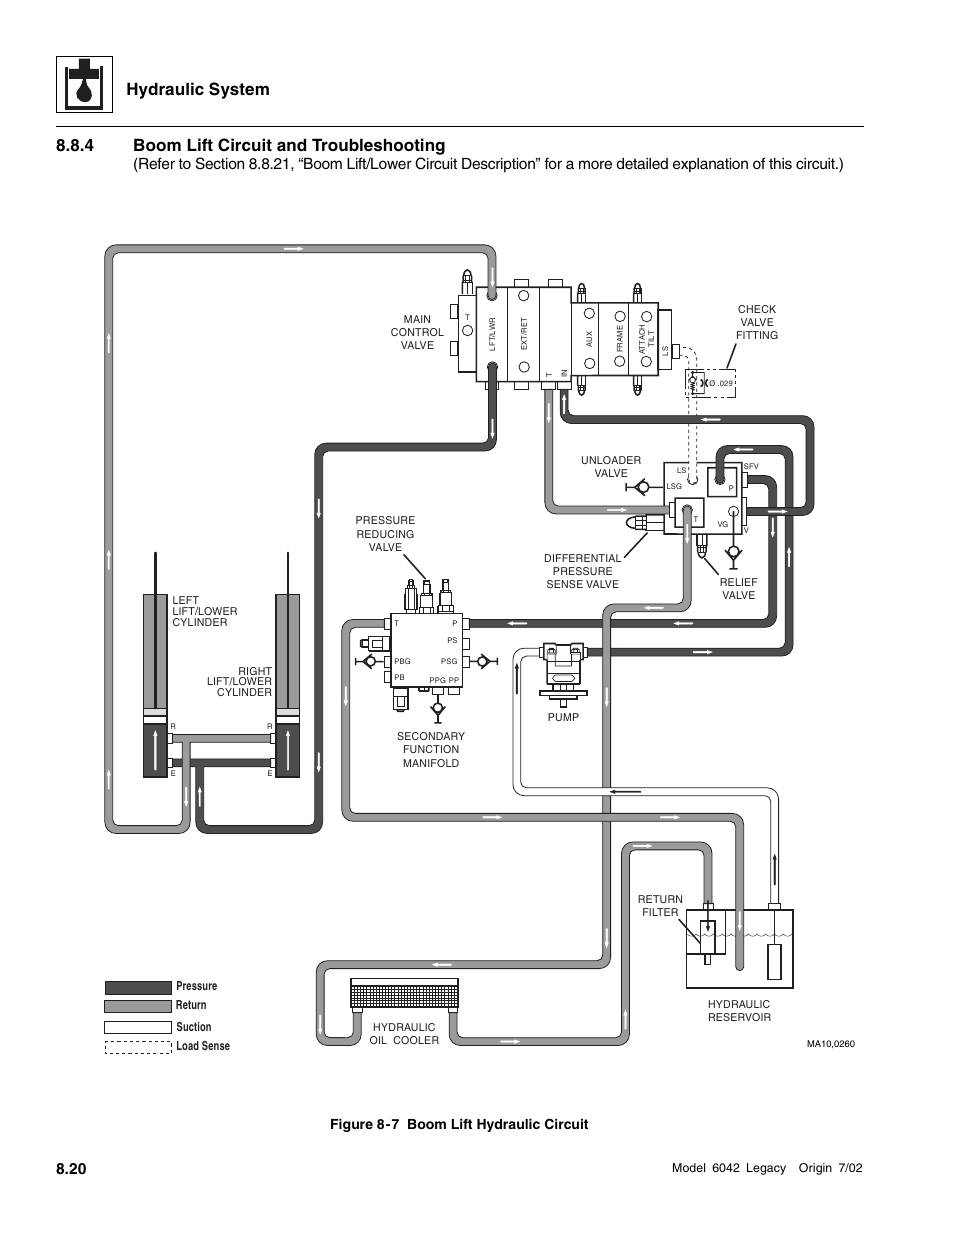 Snorkel Lift Wiring Diagram - Ford Explorer 2010 Engine Diagram for Wiring  Diagram SchematicsWiring Diagram Schematics